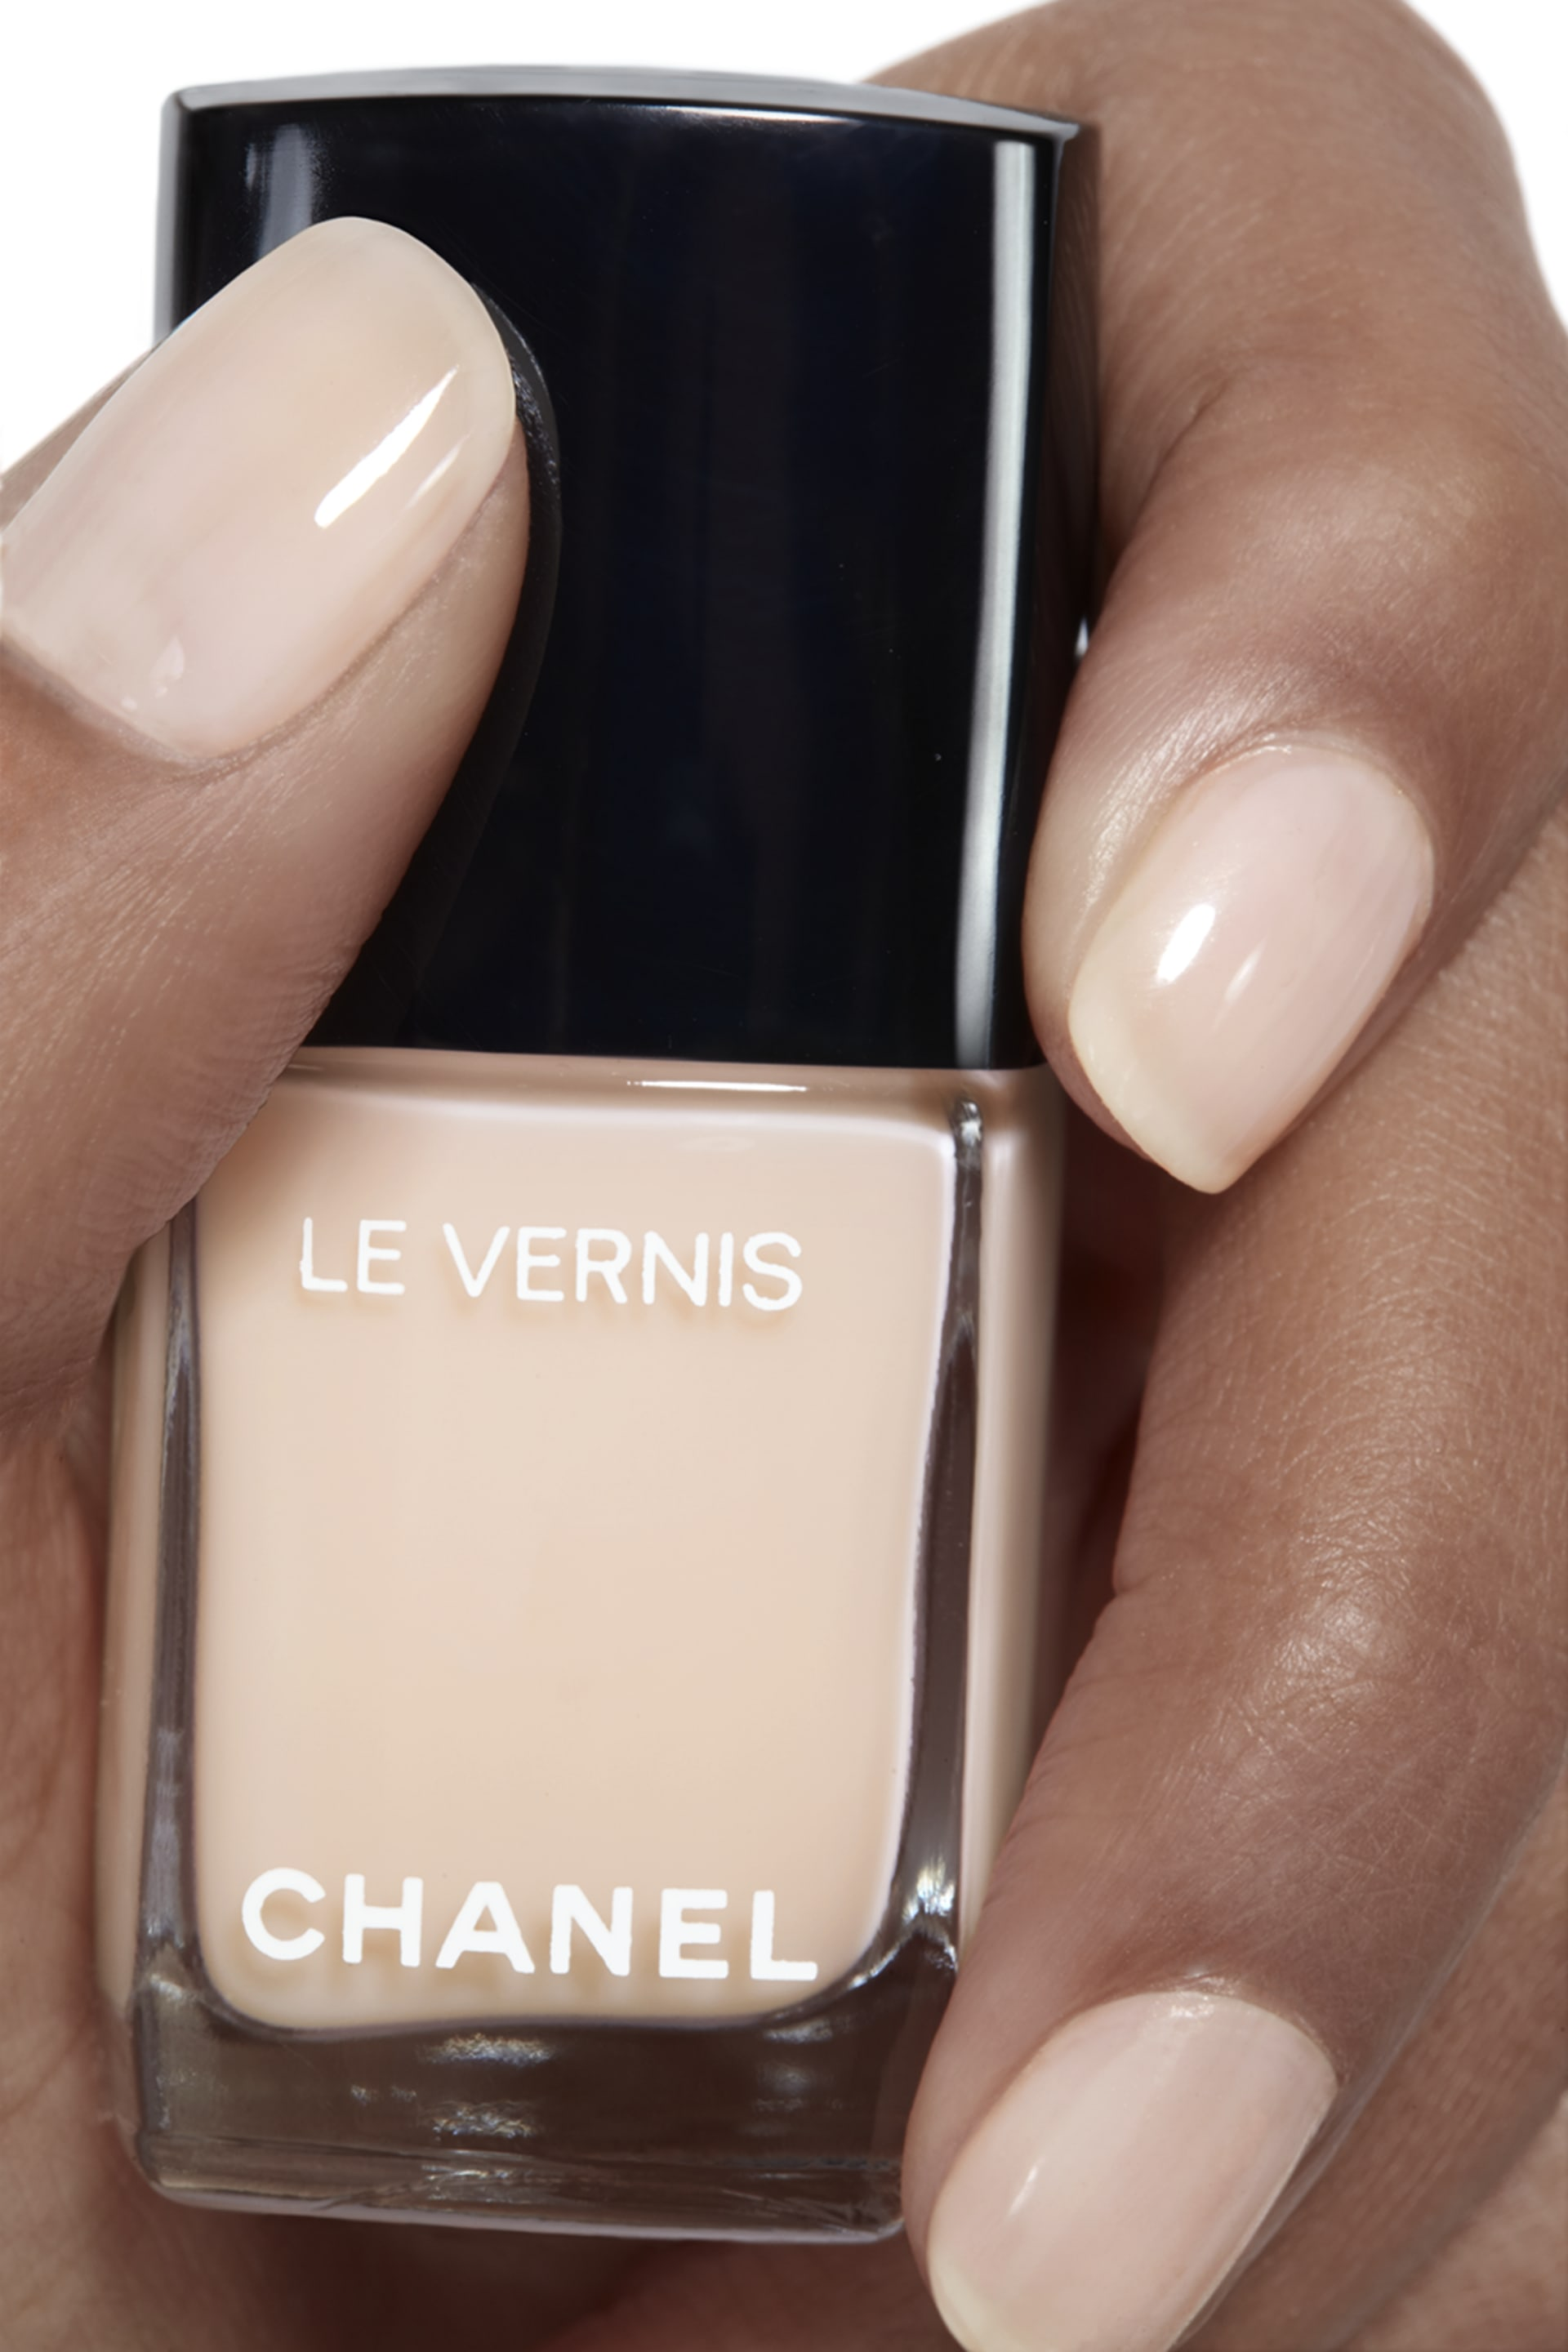 Visuel d'application maquillage 1 - LE VERNIS 548 - BLANC WHITE